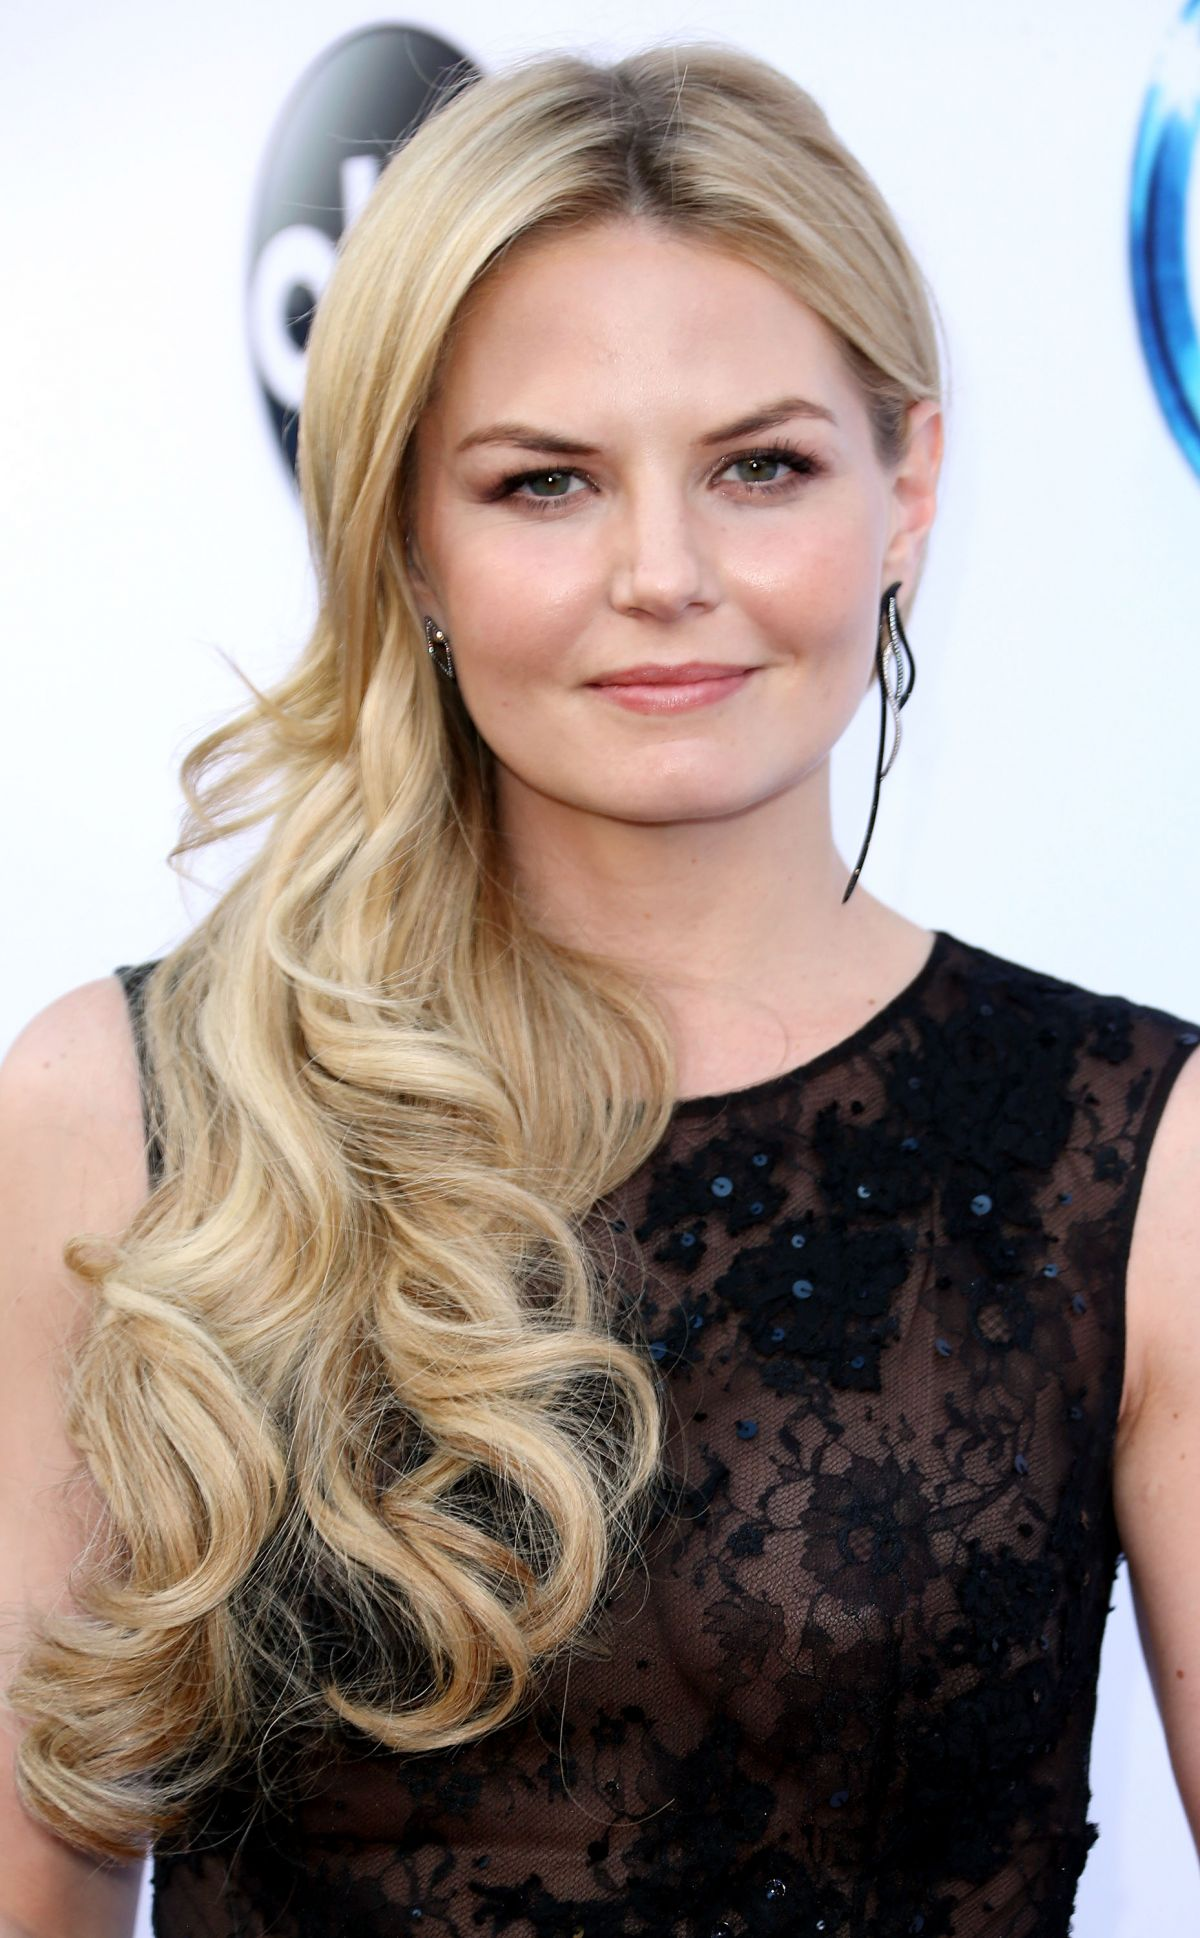 Once Upon A Time Jennifer-morrison-at-once-upon-a-time-season-4-screening-_1